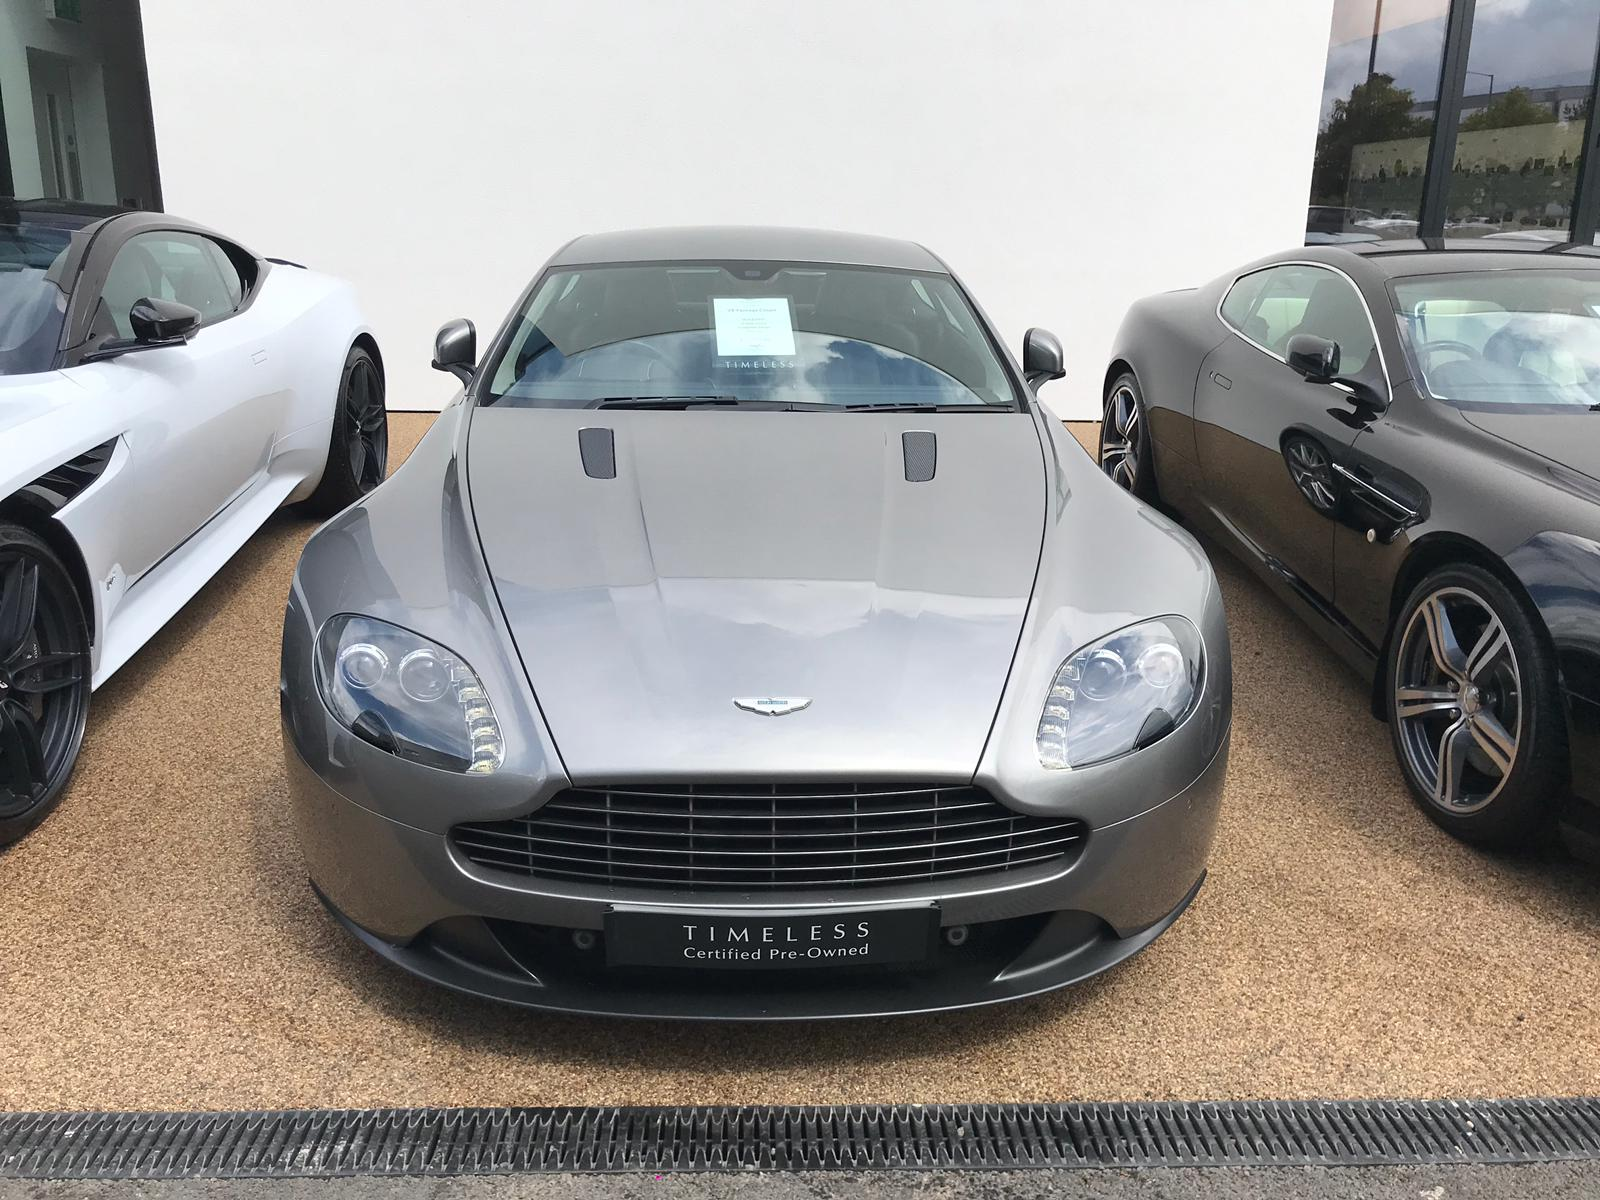 Aston Martin V8 Vantage Coupe 2dr [420] 4.7 3 door Coupe (2013) image